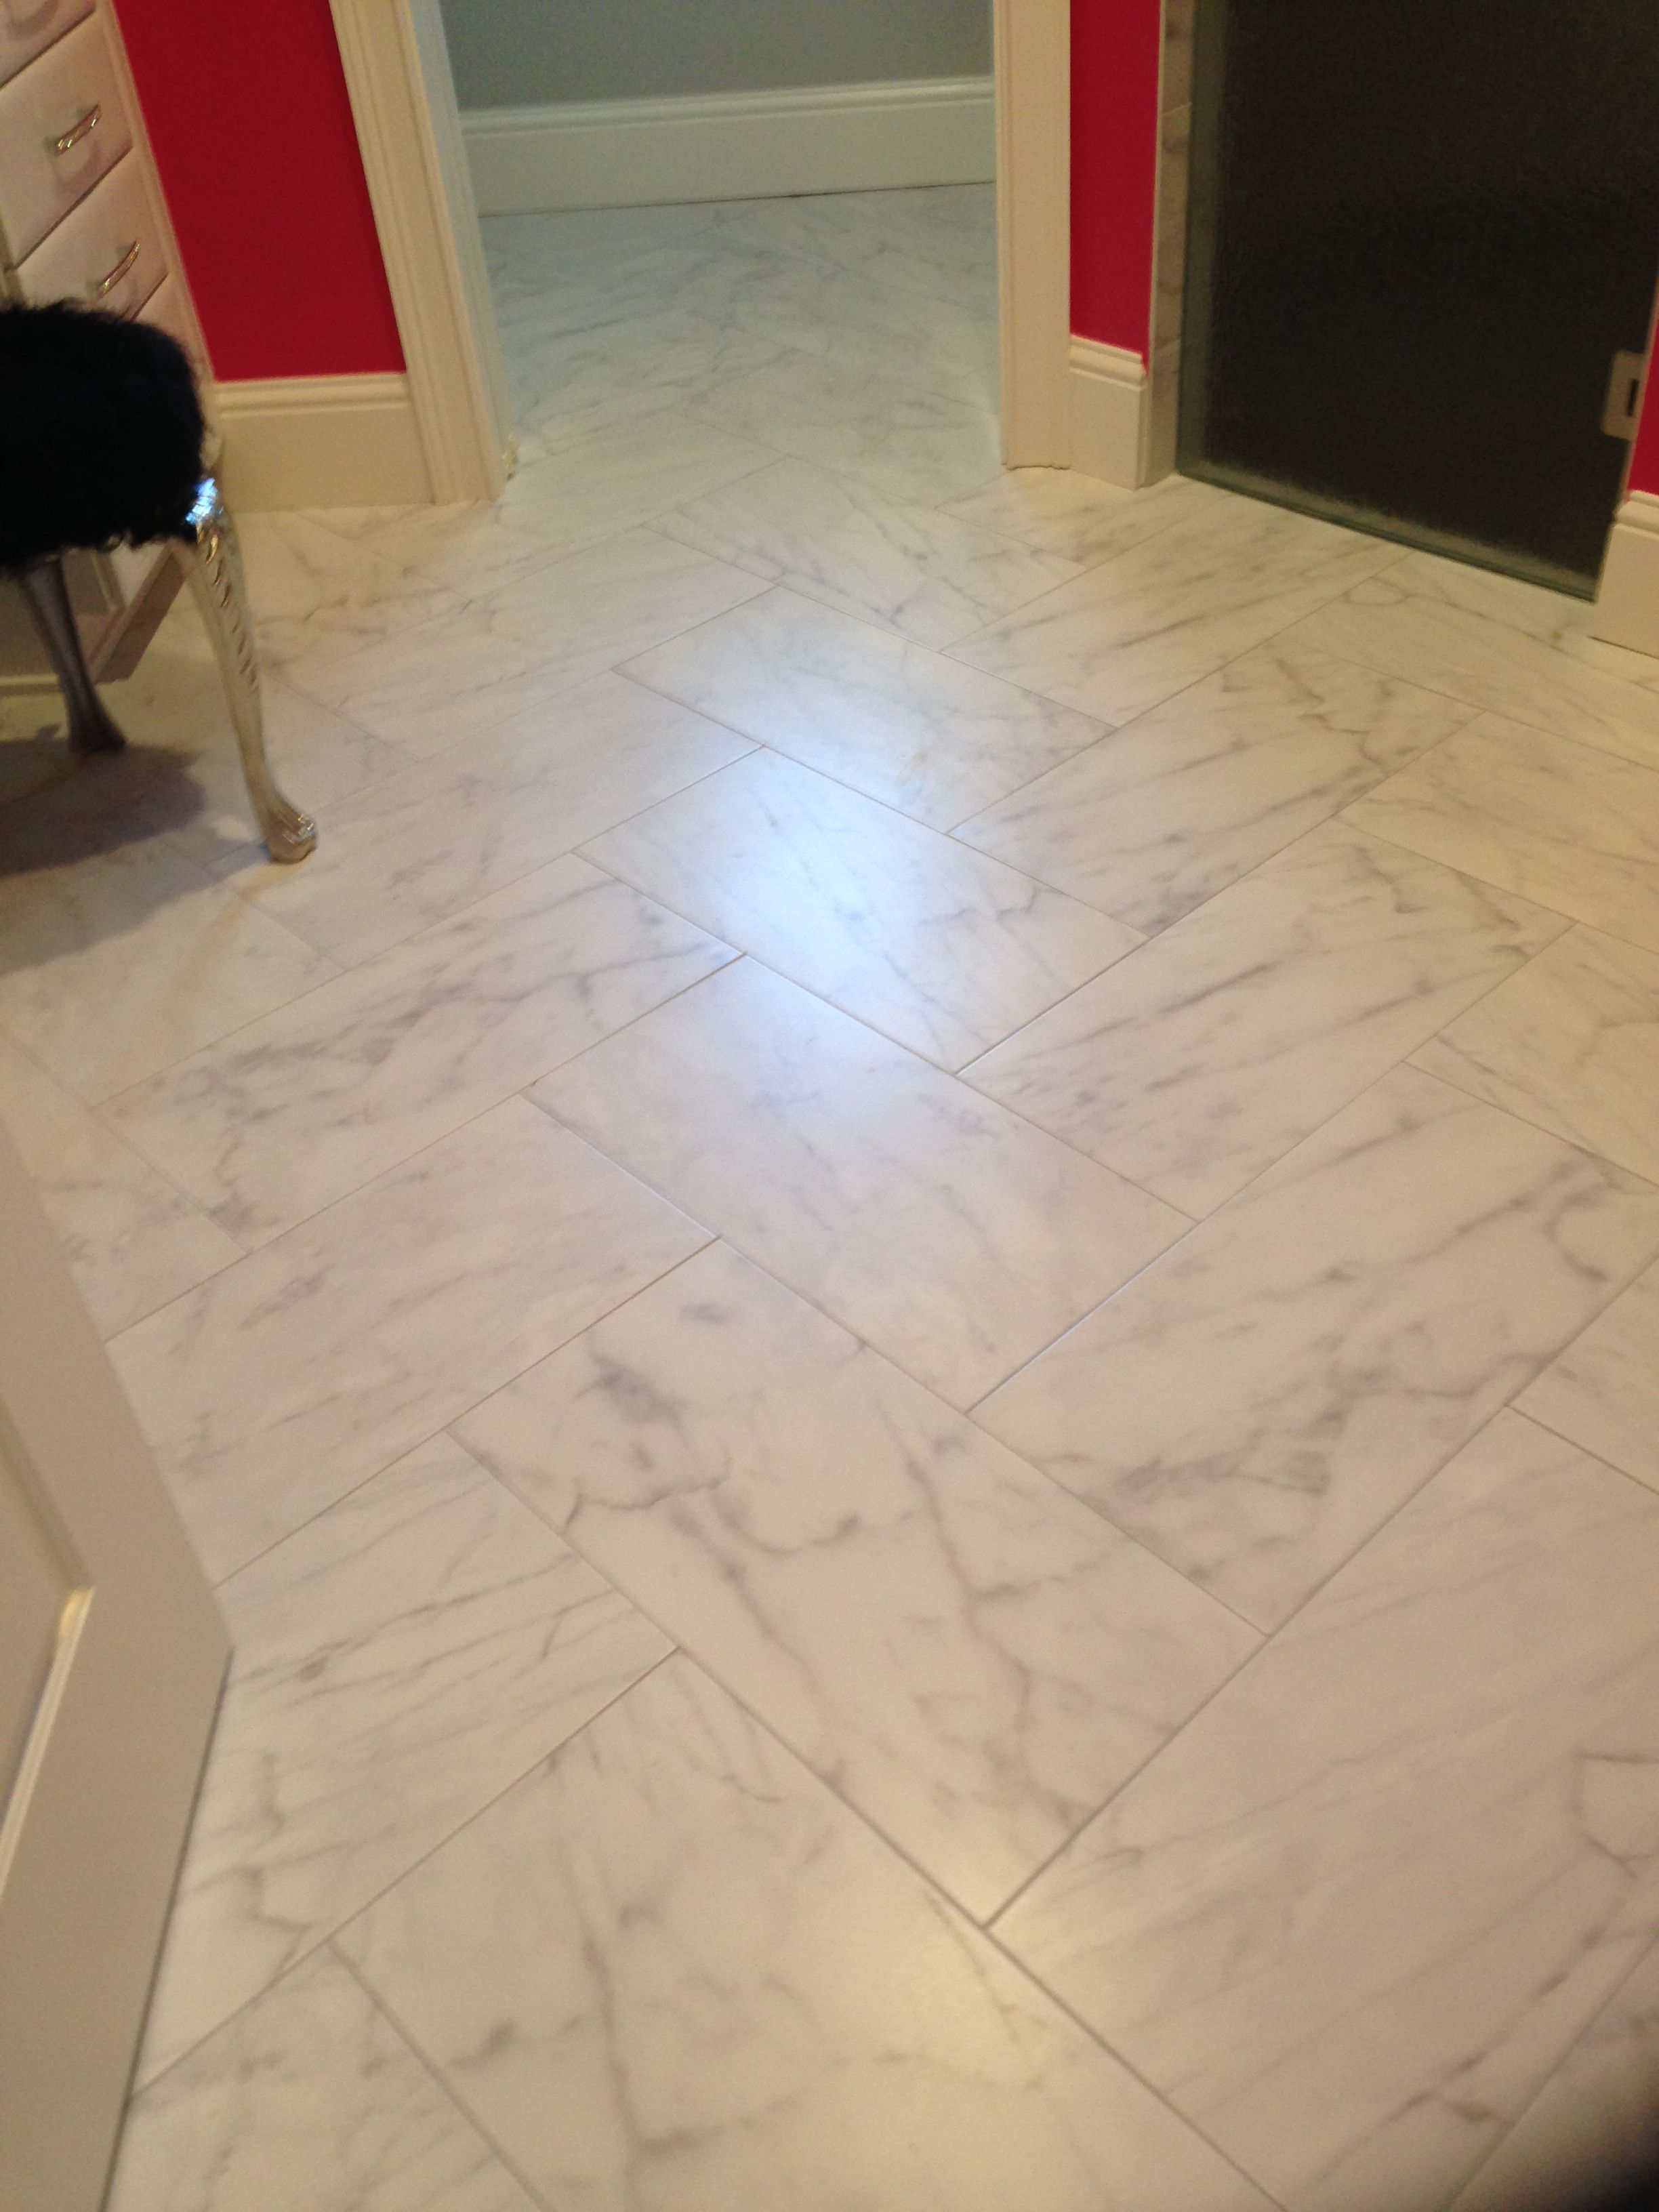 12 X 24 Carrara Look Porcelain Tile In Herringbone Pattern Marble Bathroom Tiles